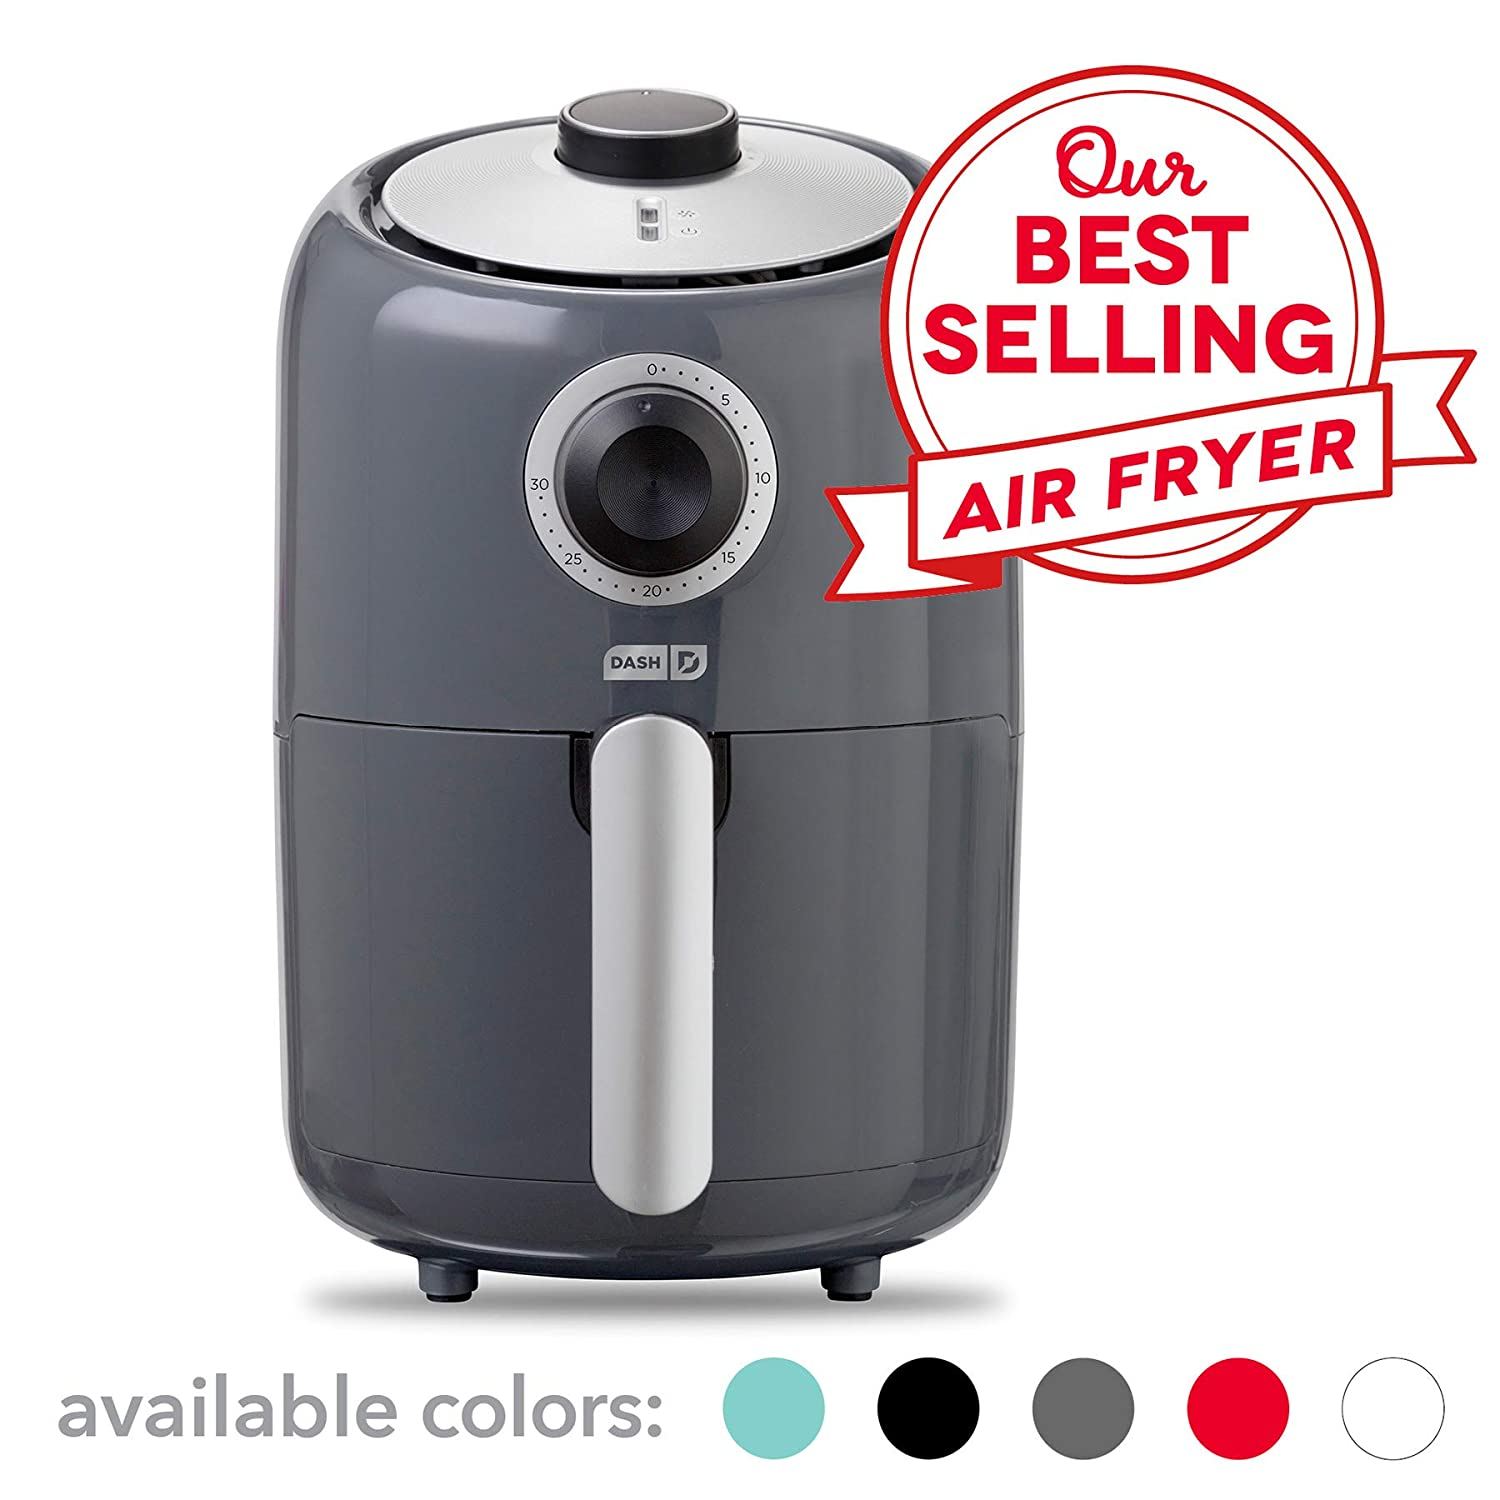 Dash Compact Air Fryer 1.2 L Electric Air Fryer Oven Cooker with Temperature Control, Non Stick Fry Basket, Recipe Guide Auto Shut off Feature – Grey